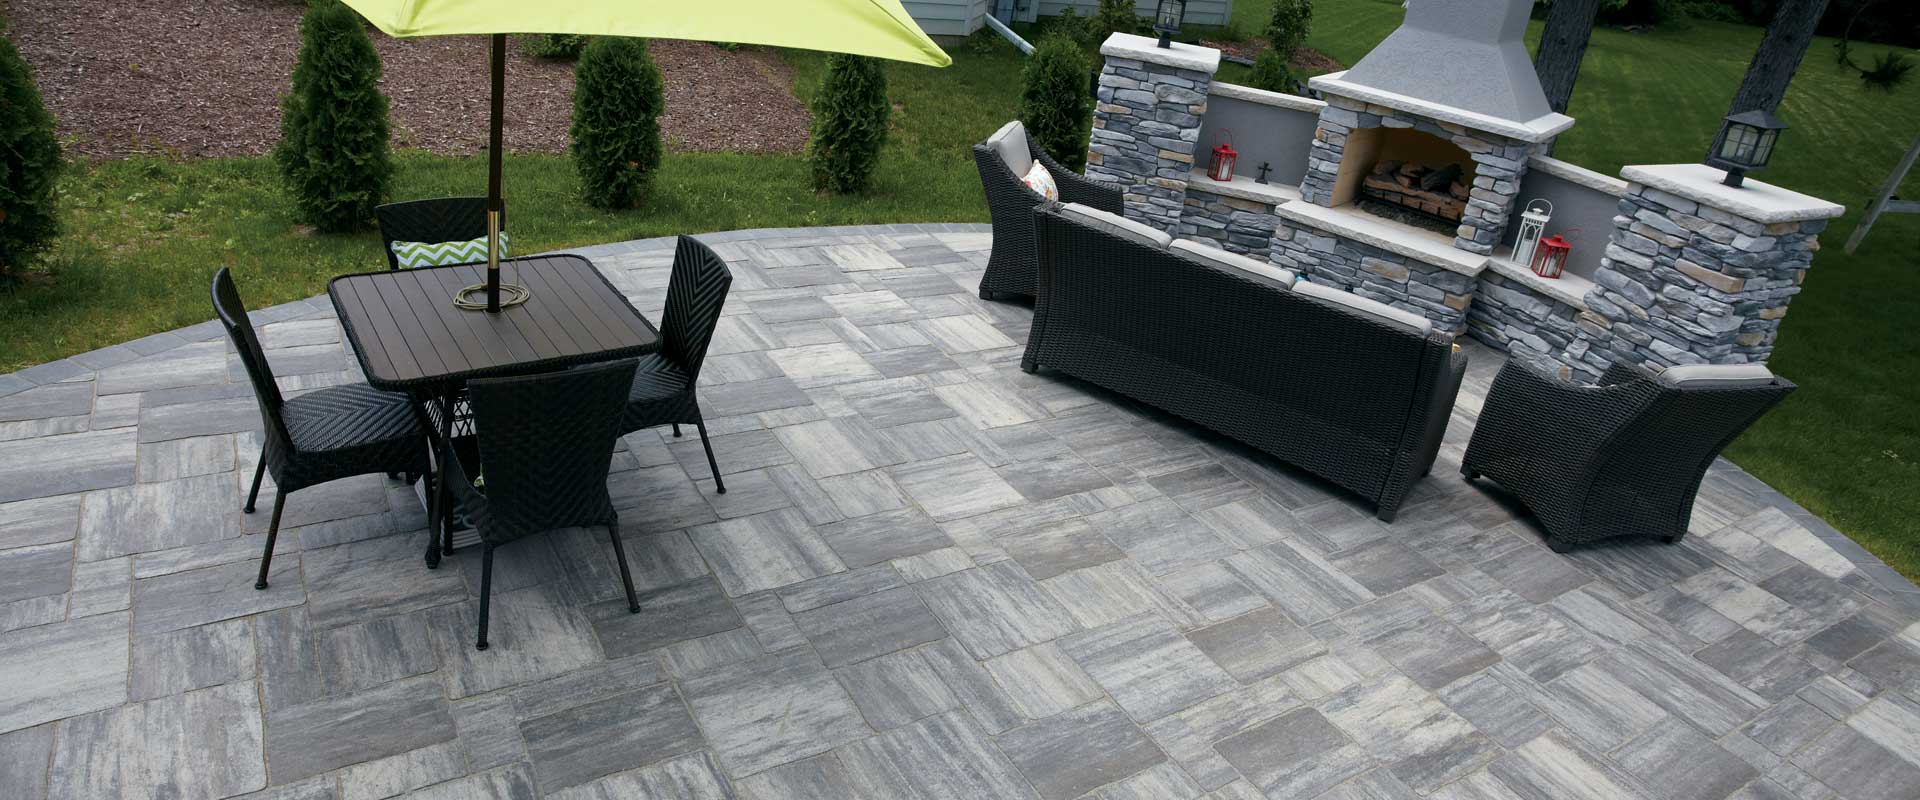 Etonnant Pavers U0026 Patio Stones